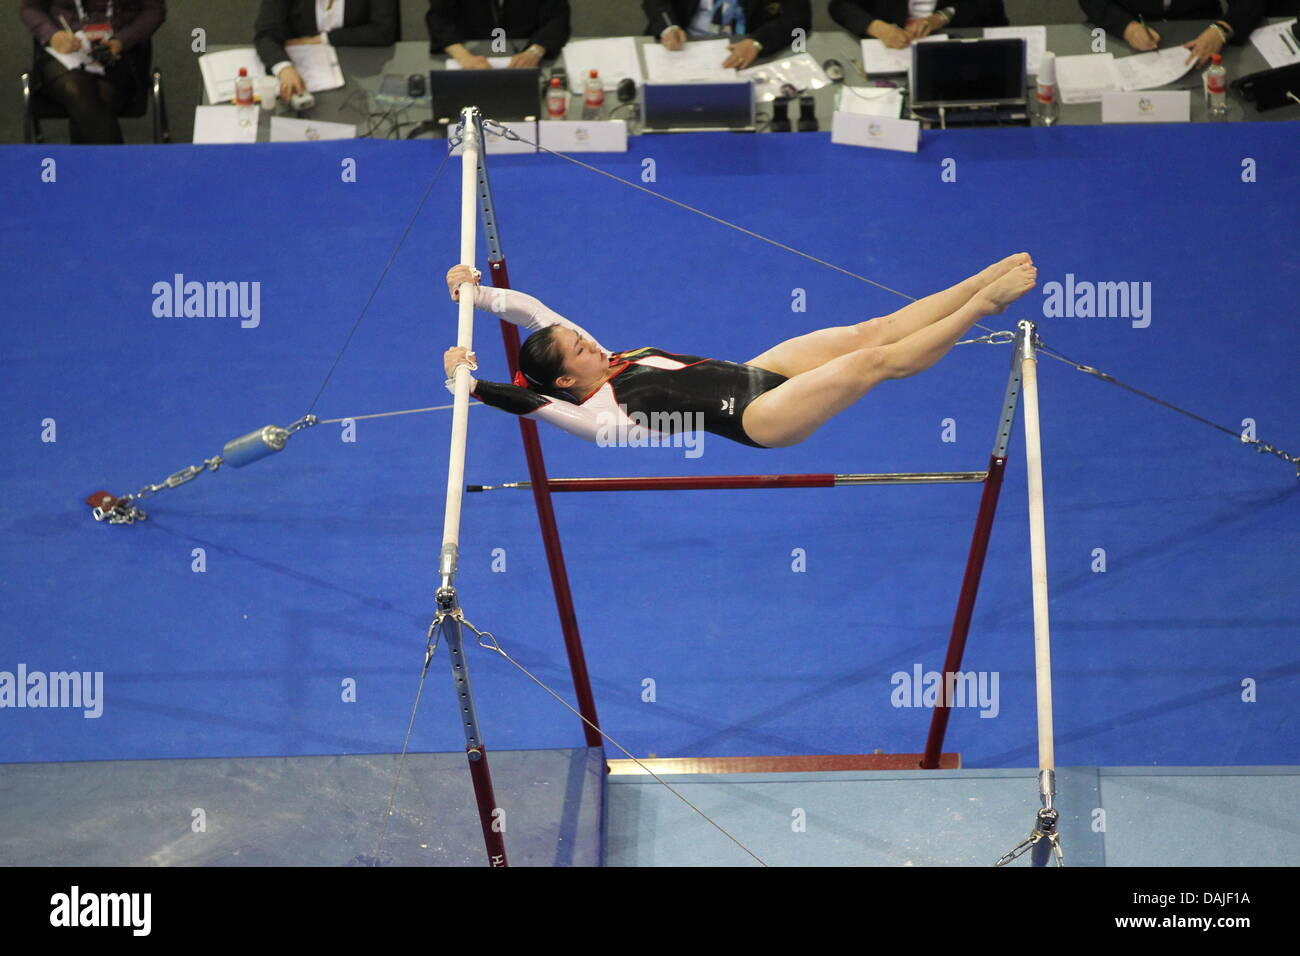 9fb94e5b78e1 The German Kim Bui performs on the uneven bars at the women's apparatus uneven  bars finals of the Gymnastics European Championships in Max-Schmeling-Hall  in ...